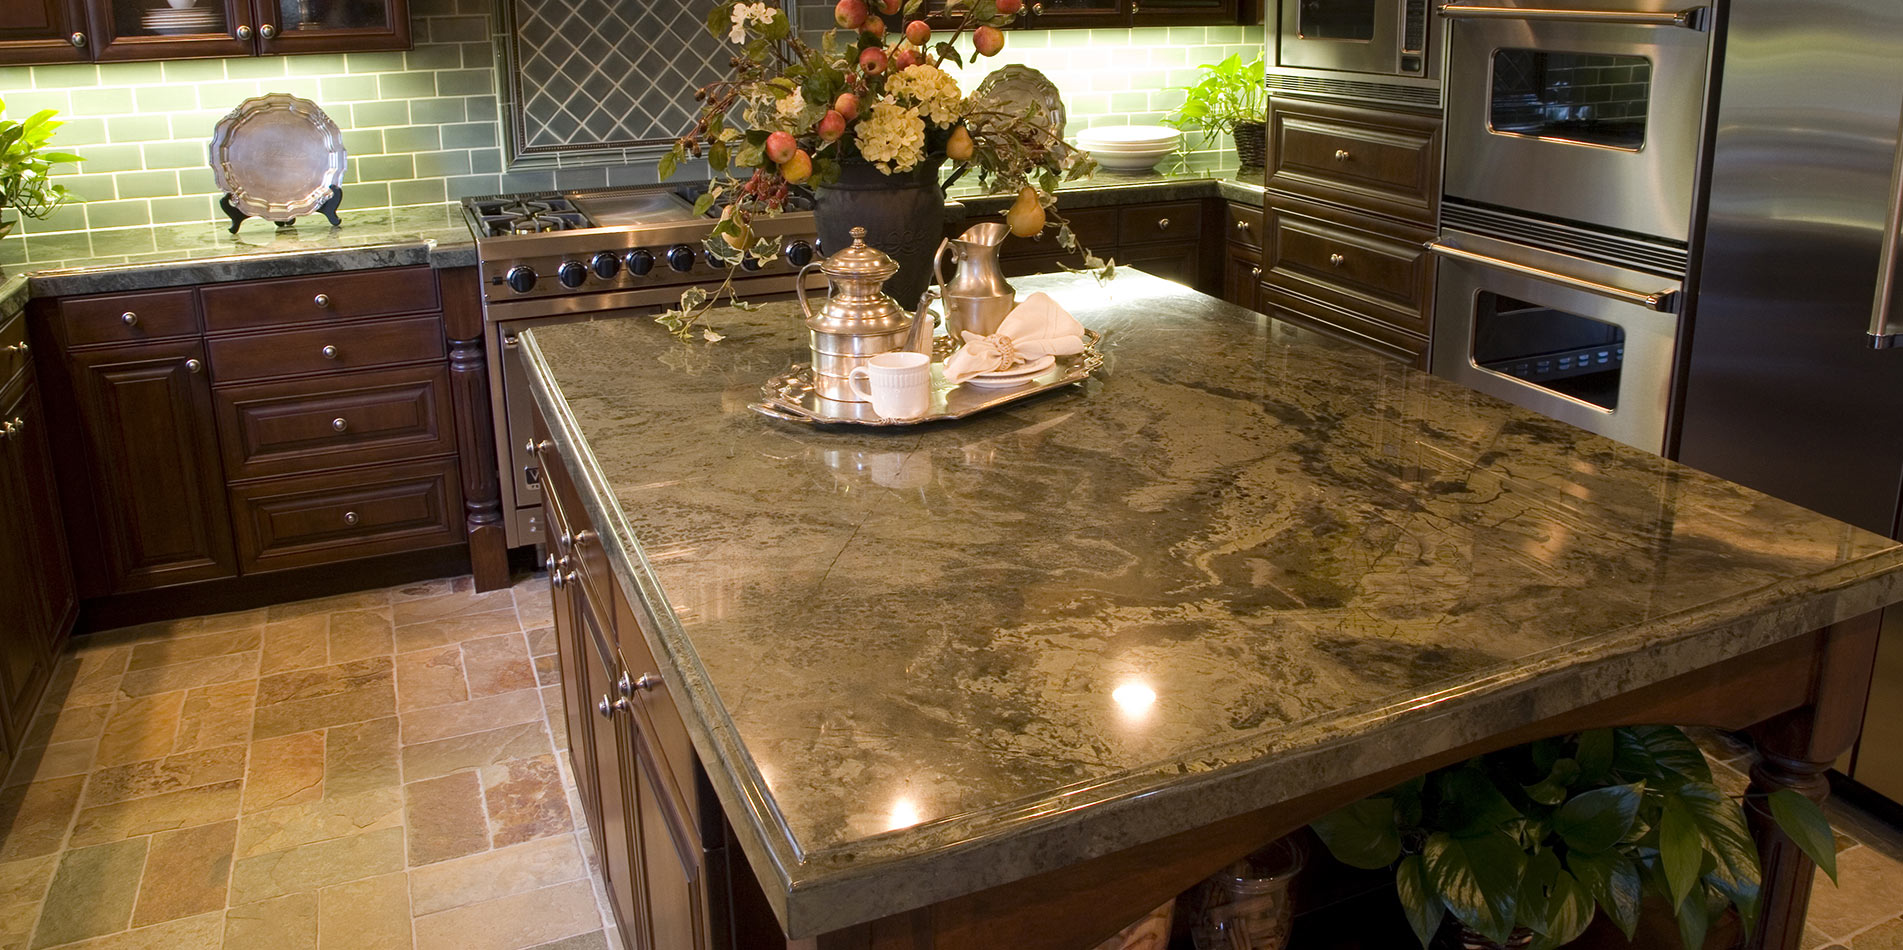 Salt Lake City Countertops Complete Source Countertops Salt Lake City Ut 801 520 5460